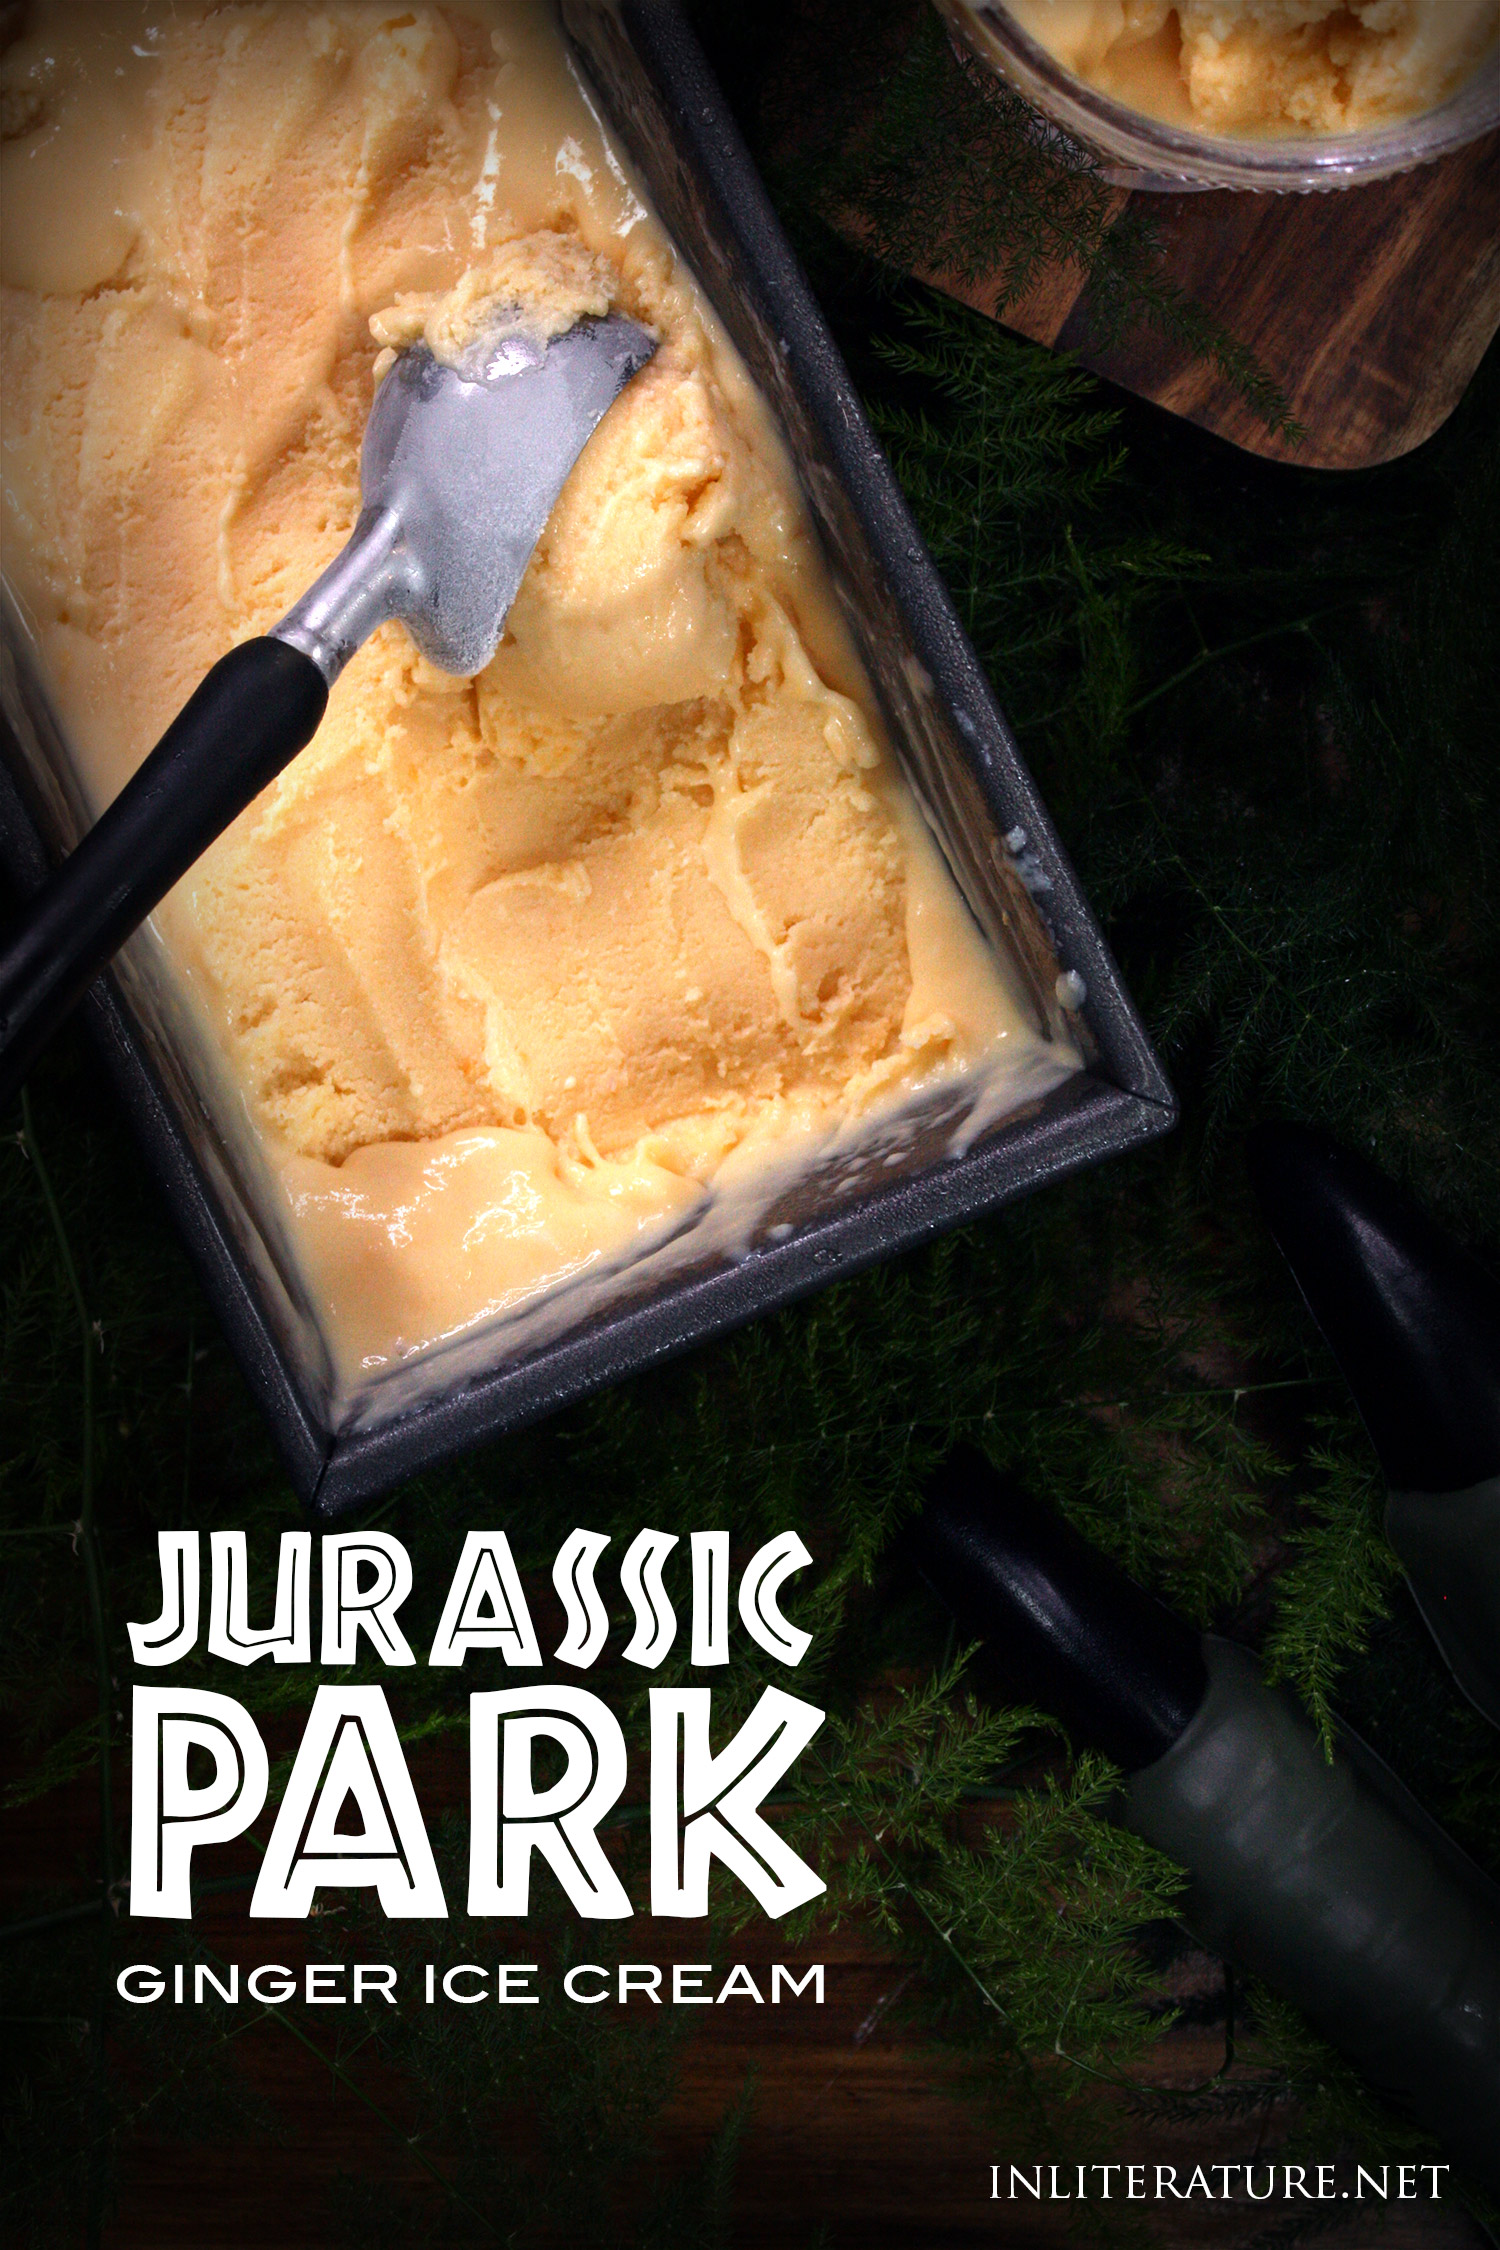 Ginger Ice Cream | Jurassic Park